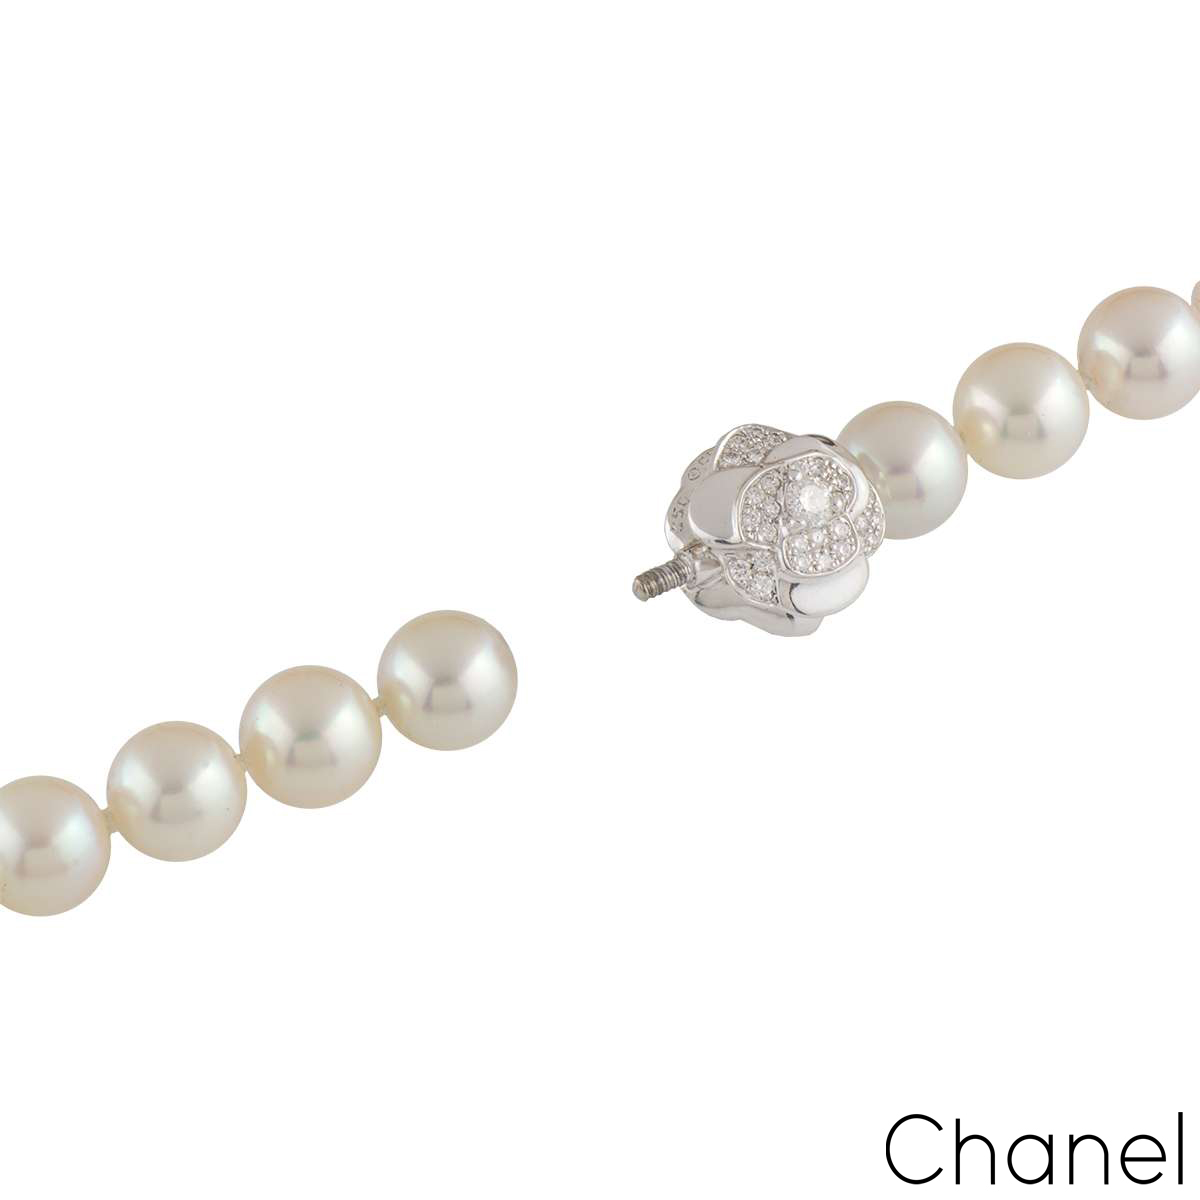 Chanel White Gold Diamond & Pearl Necklace